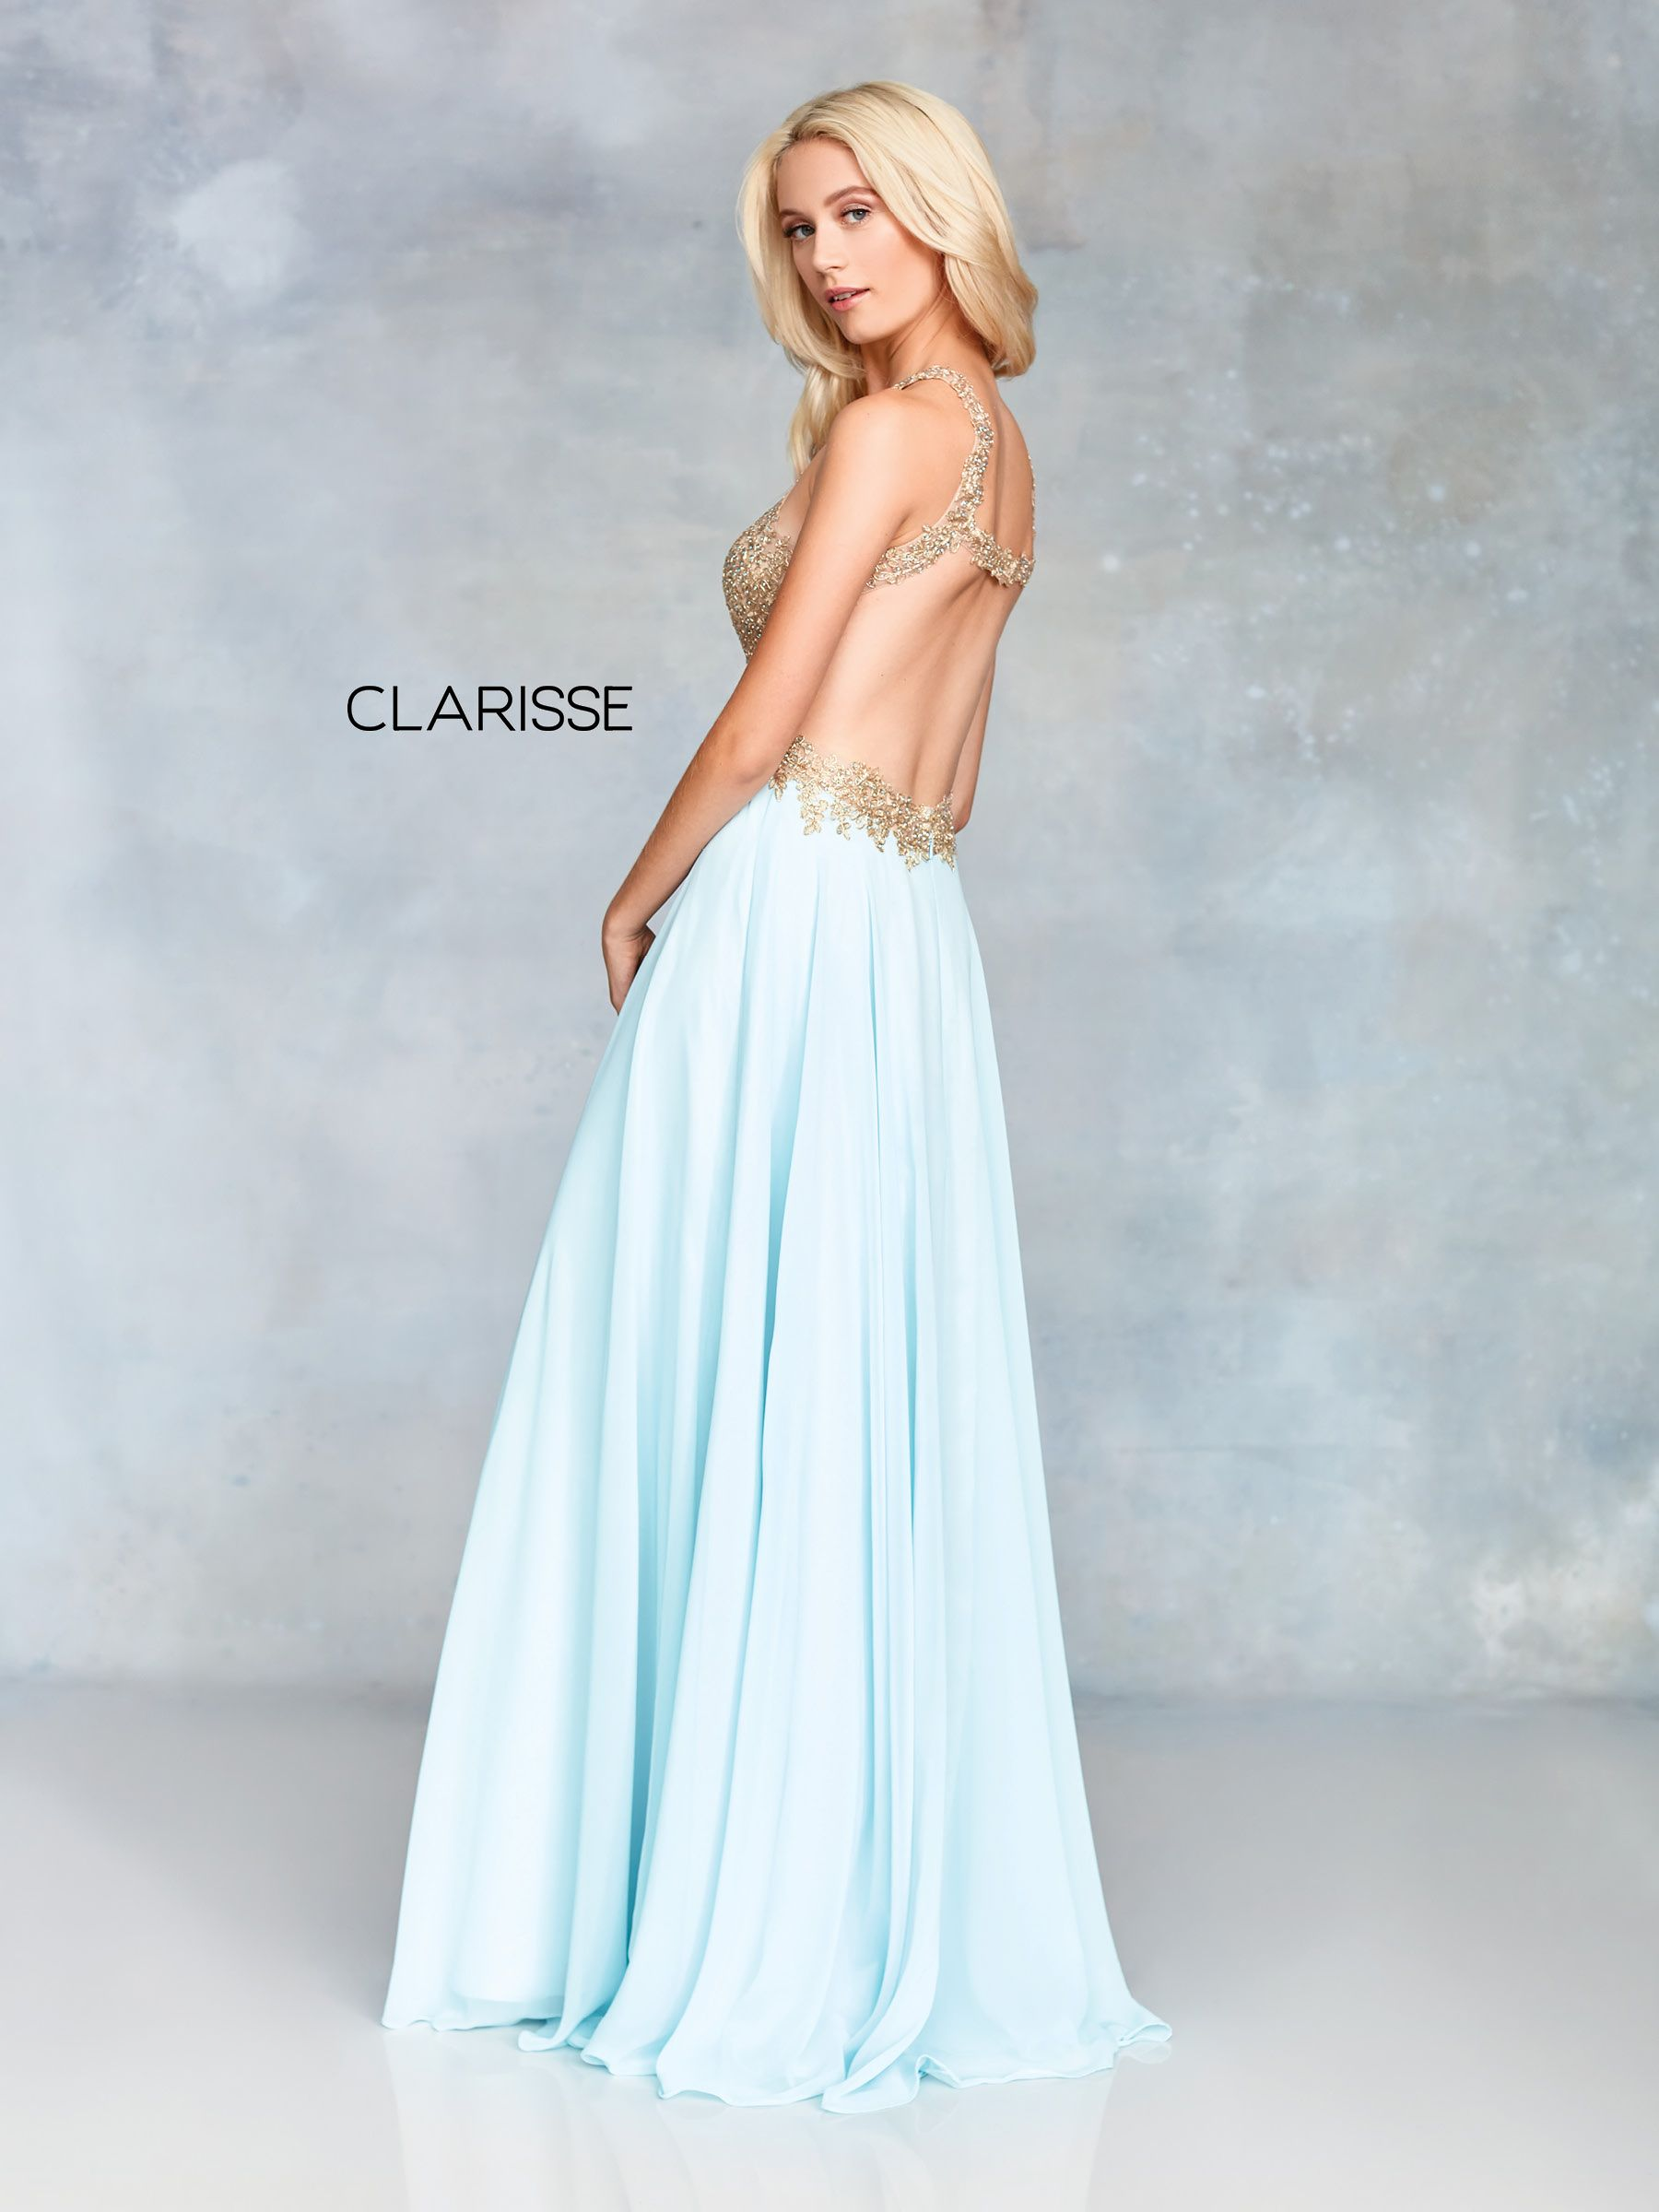 cf3b92fc10 3759 - Seafoam green and gold chiffon prom dress with a lace top and open  back